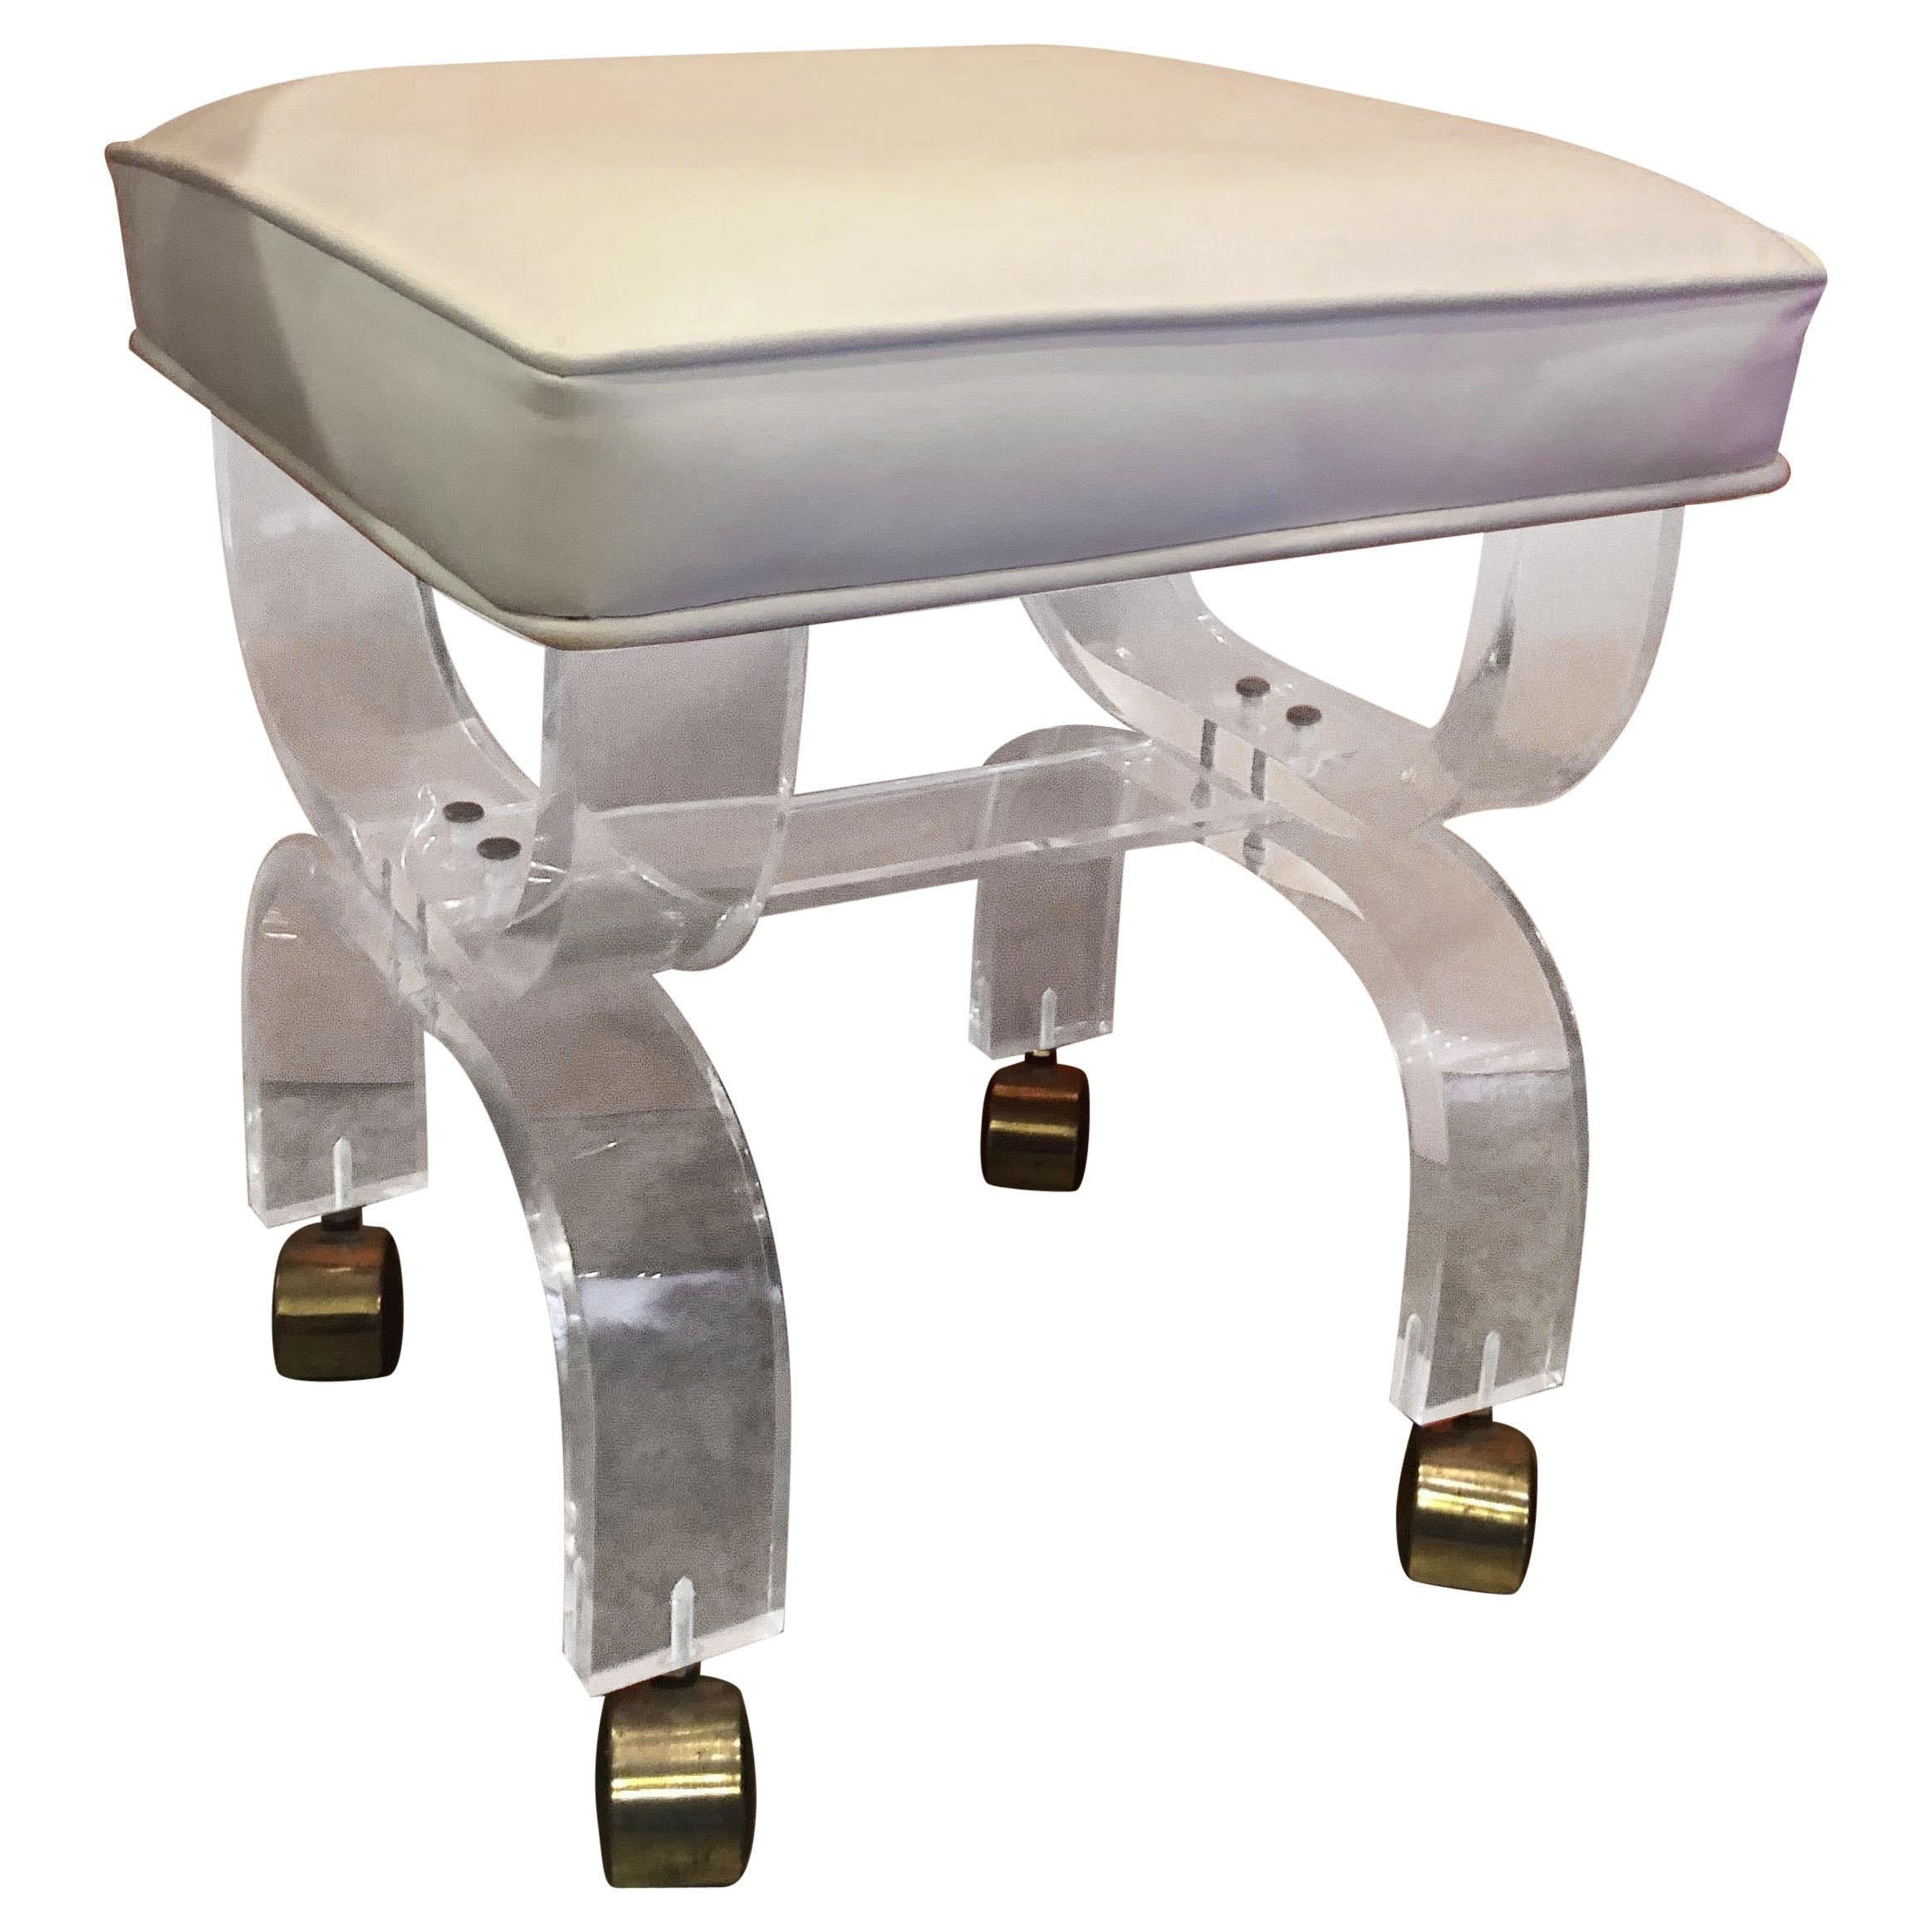 Midcentury Lucite Vanity Stool or Bench with White Seat